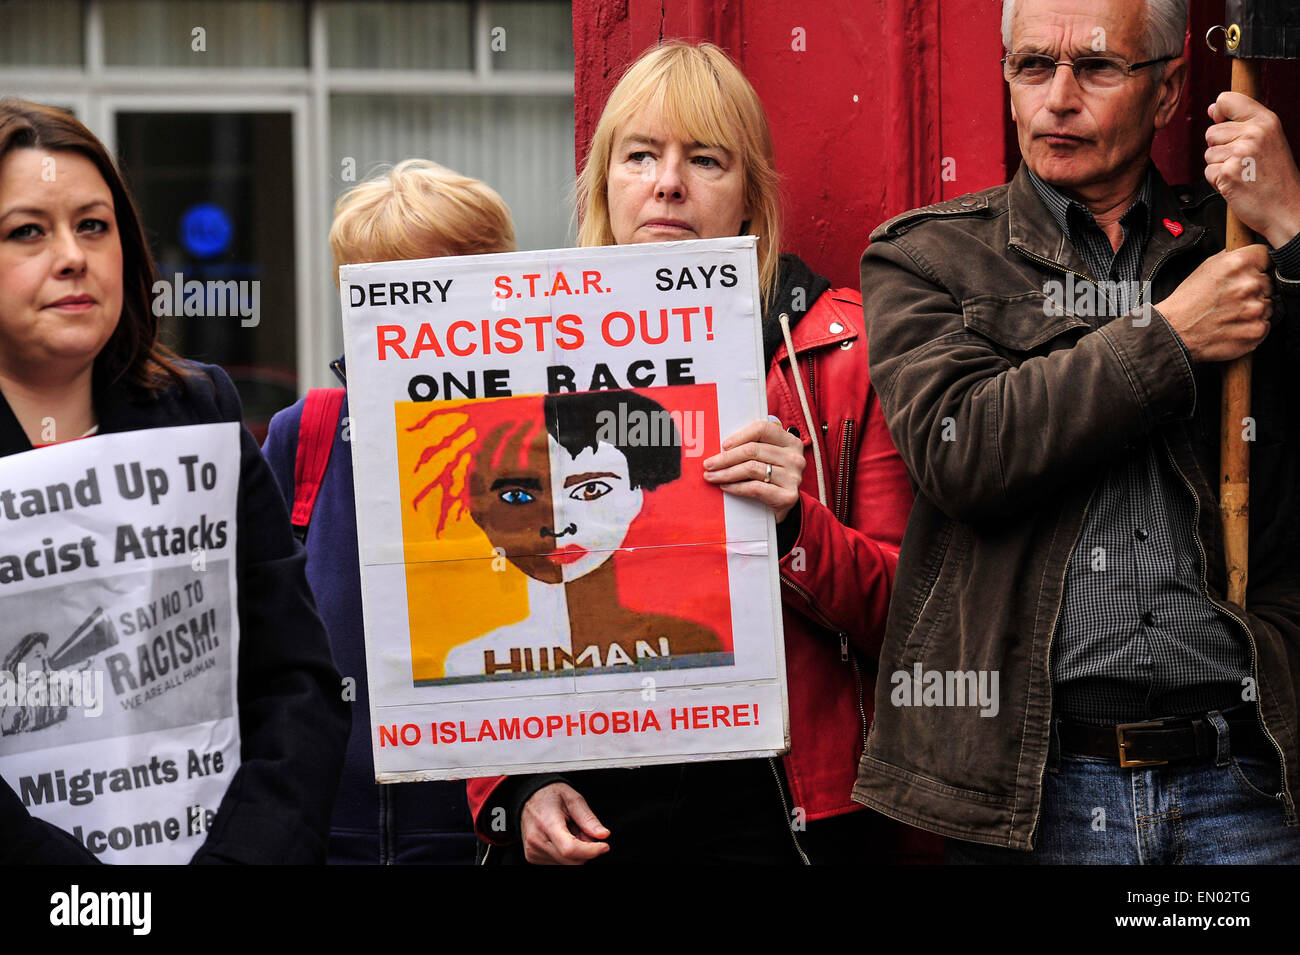 Londonderry, Northern Ireland. 24th April, 2015. Rally against racist attack on shop worker, Londonderry, Northern - Stock Image